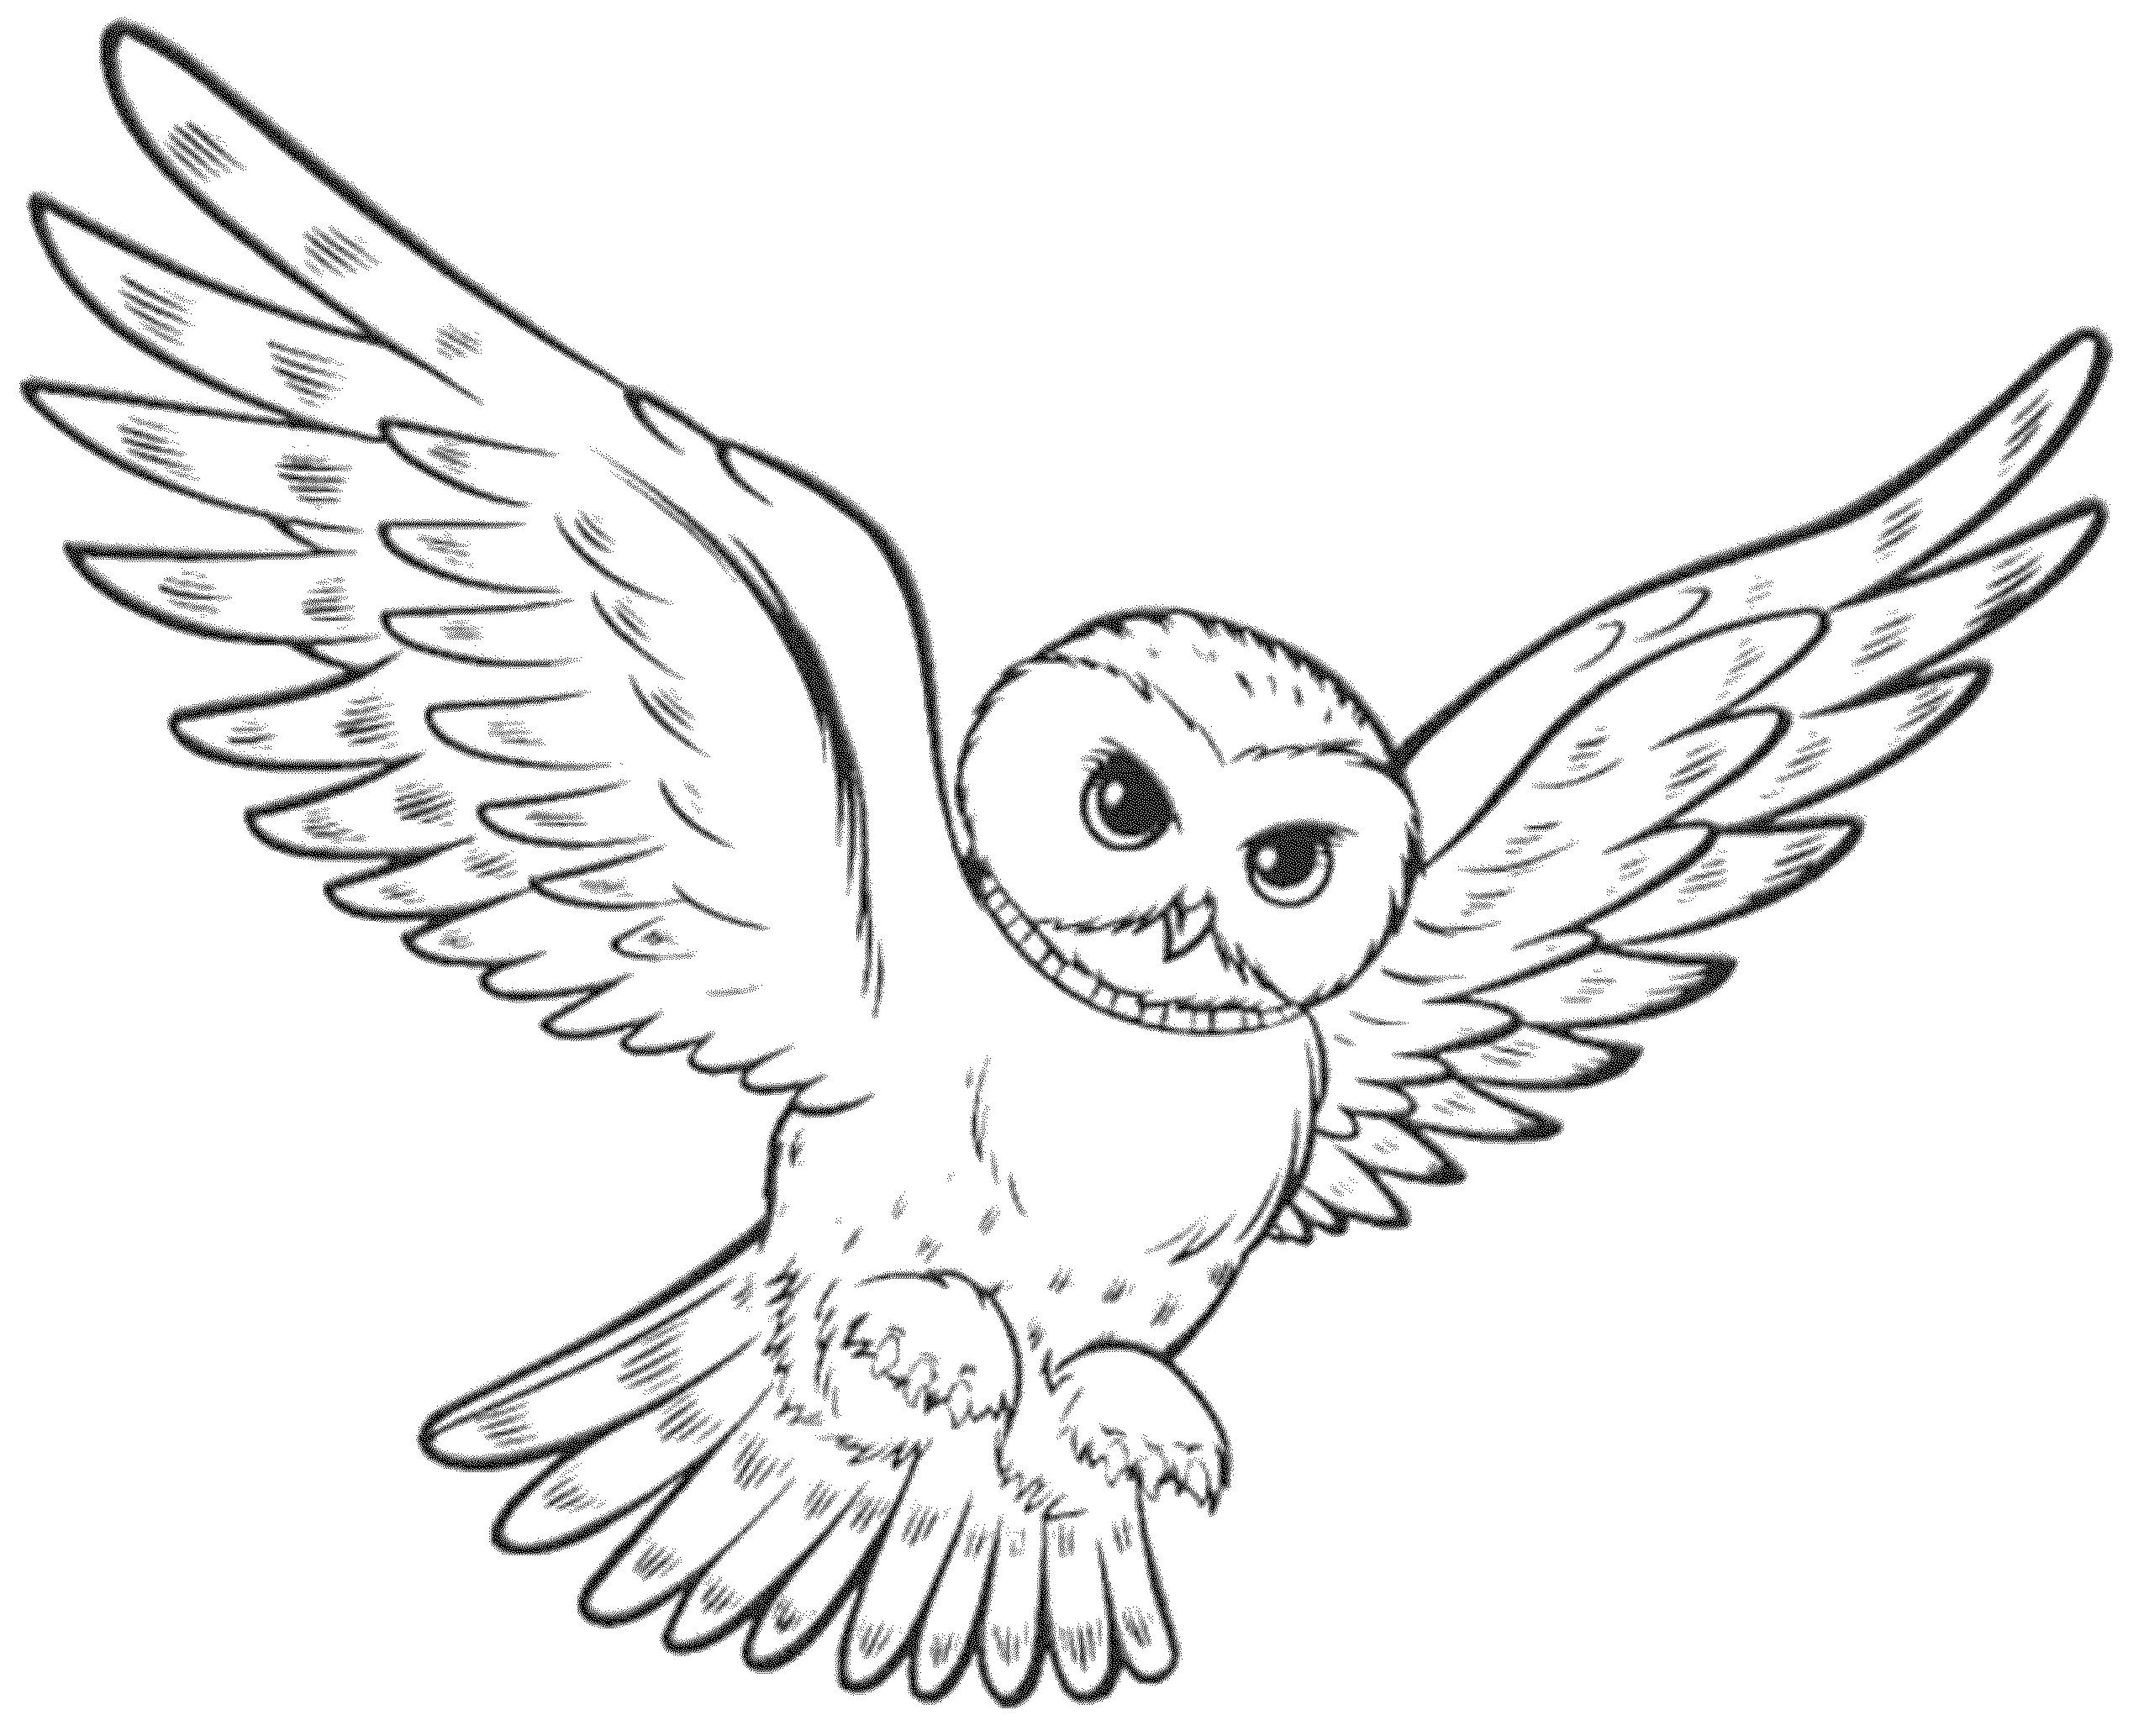 Owl Coloring Pages Flying Printable Kids Colouring Entrancing Owl Coloring Pages Animal Coloring Pages Harry Potter Coloring Pages